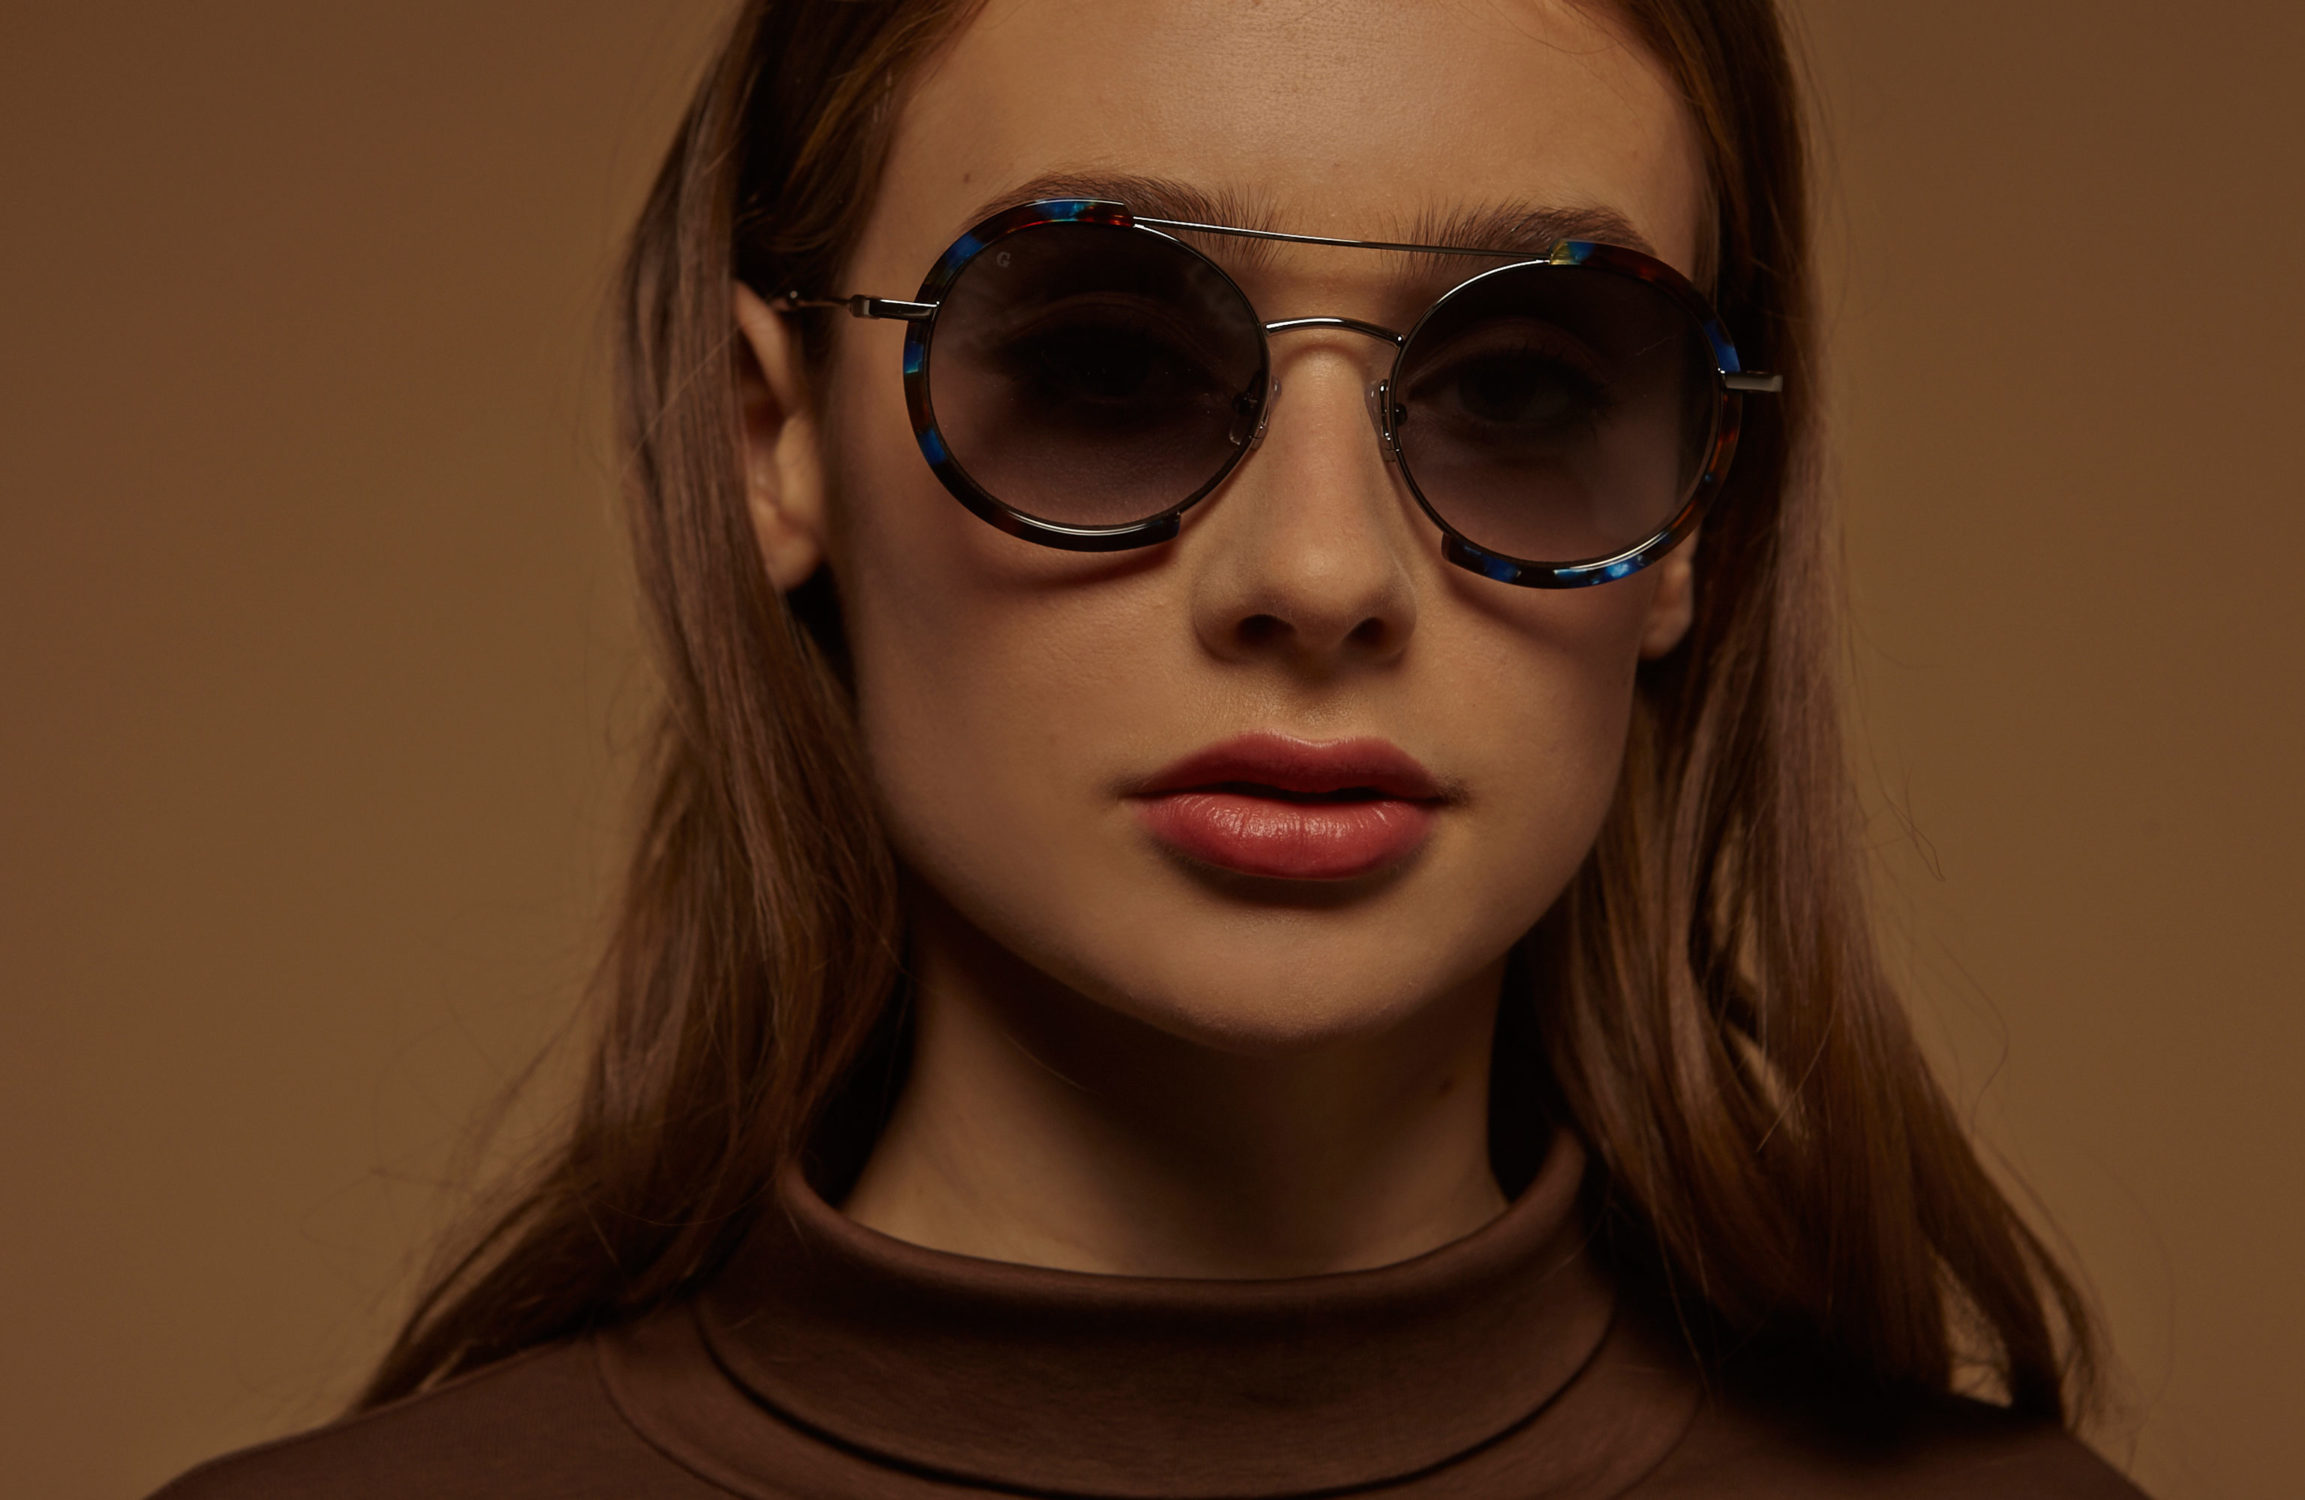 Honolulu acetate/metal rounded blue sunglasses by GIGI Studios